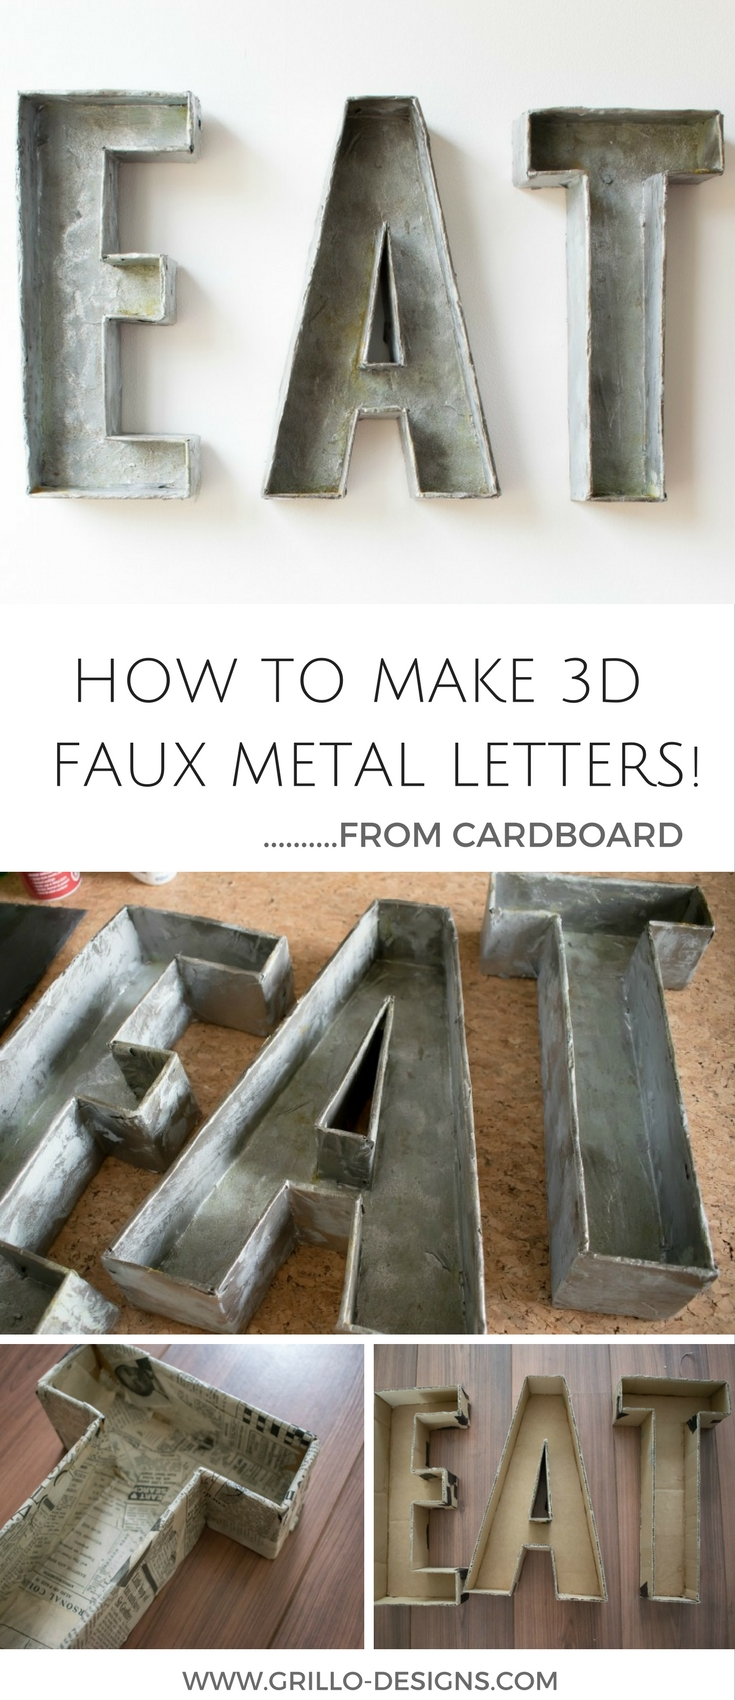 Large Hollow Metal Letters 3D Faux Metal Letters Tutorial  From Cardboard